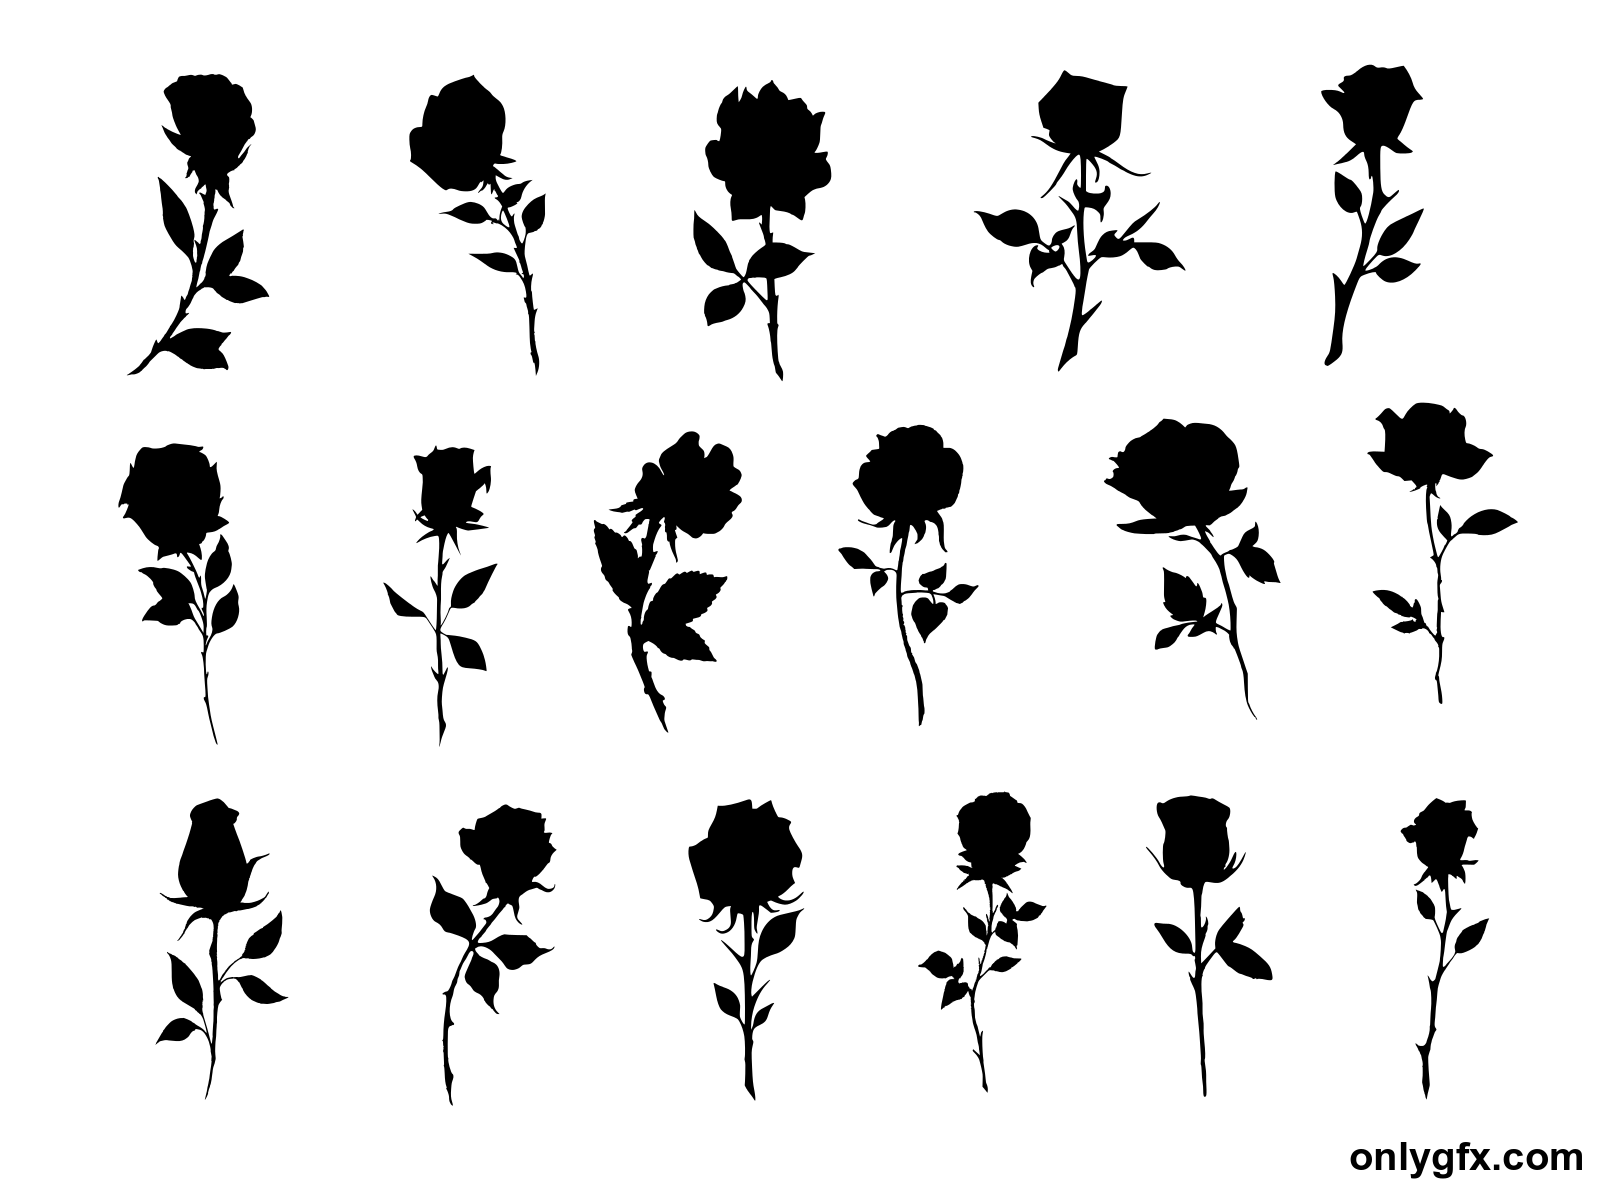 Rose Silhouette Png - 17 Rose Silhouette (PNG Transparent) | OnlyGFX.com